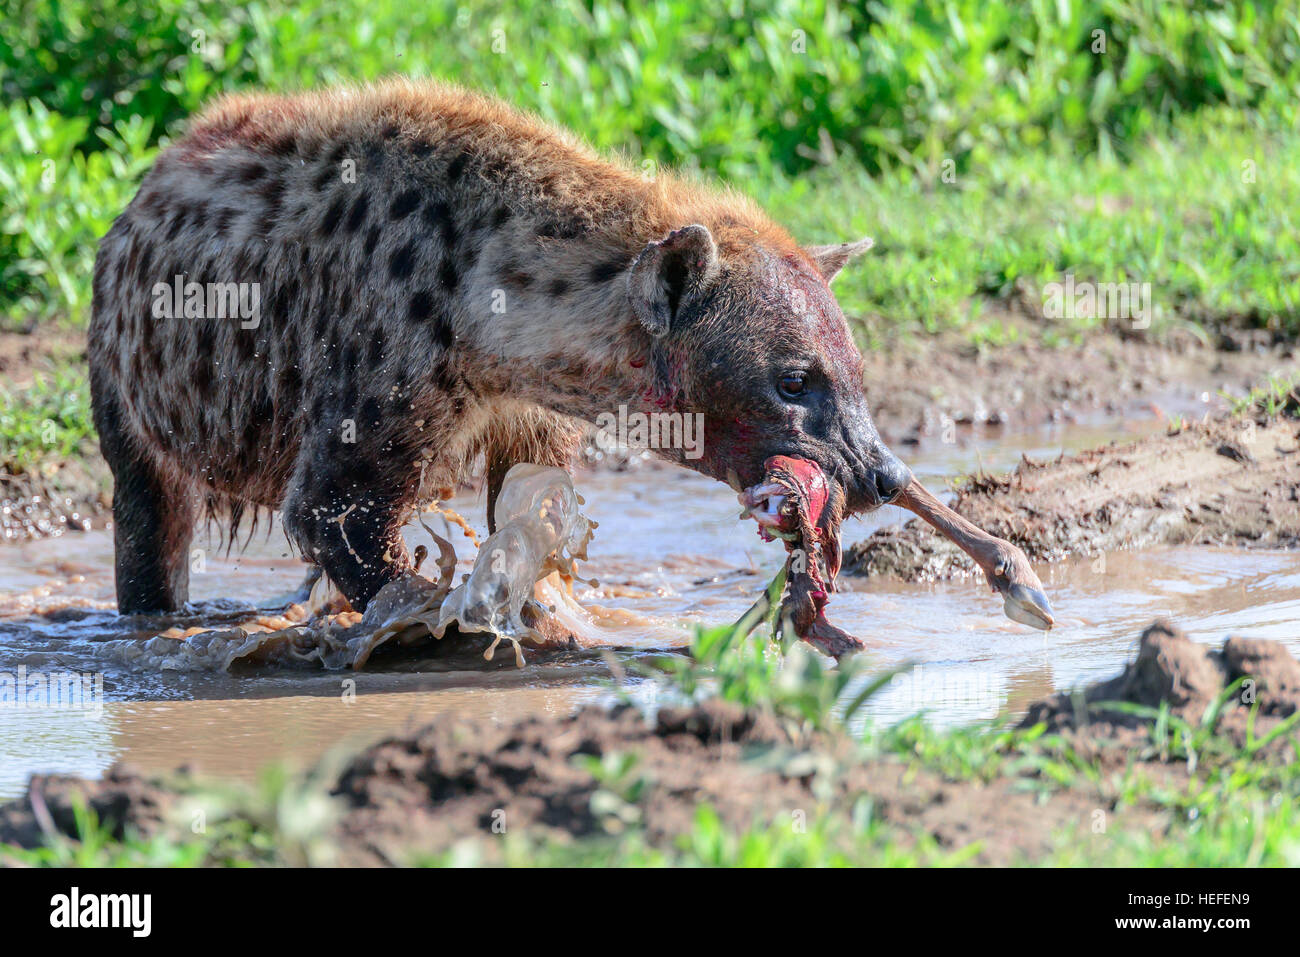 A spotted hyena (or 'laughing hyena) Crocuta crocuta about to hide its captured food - a wildebeest limb - underwater. - Stock Image